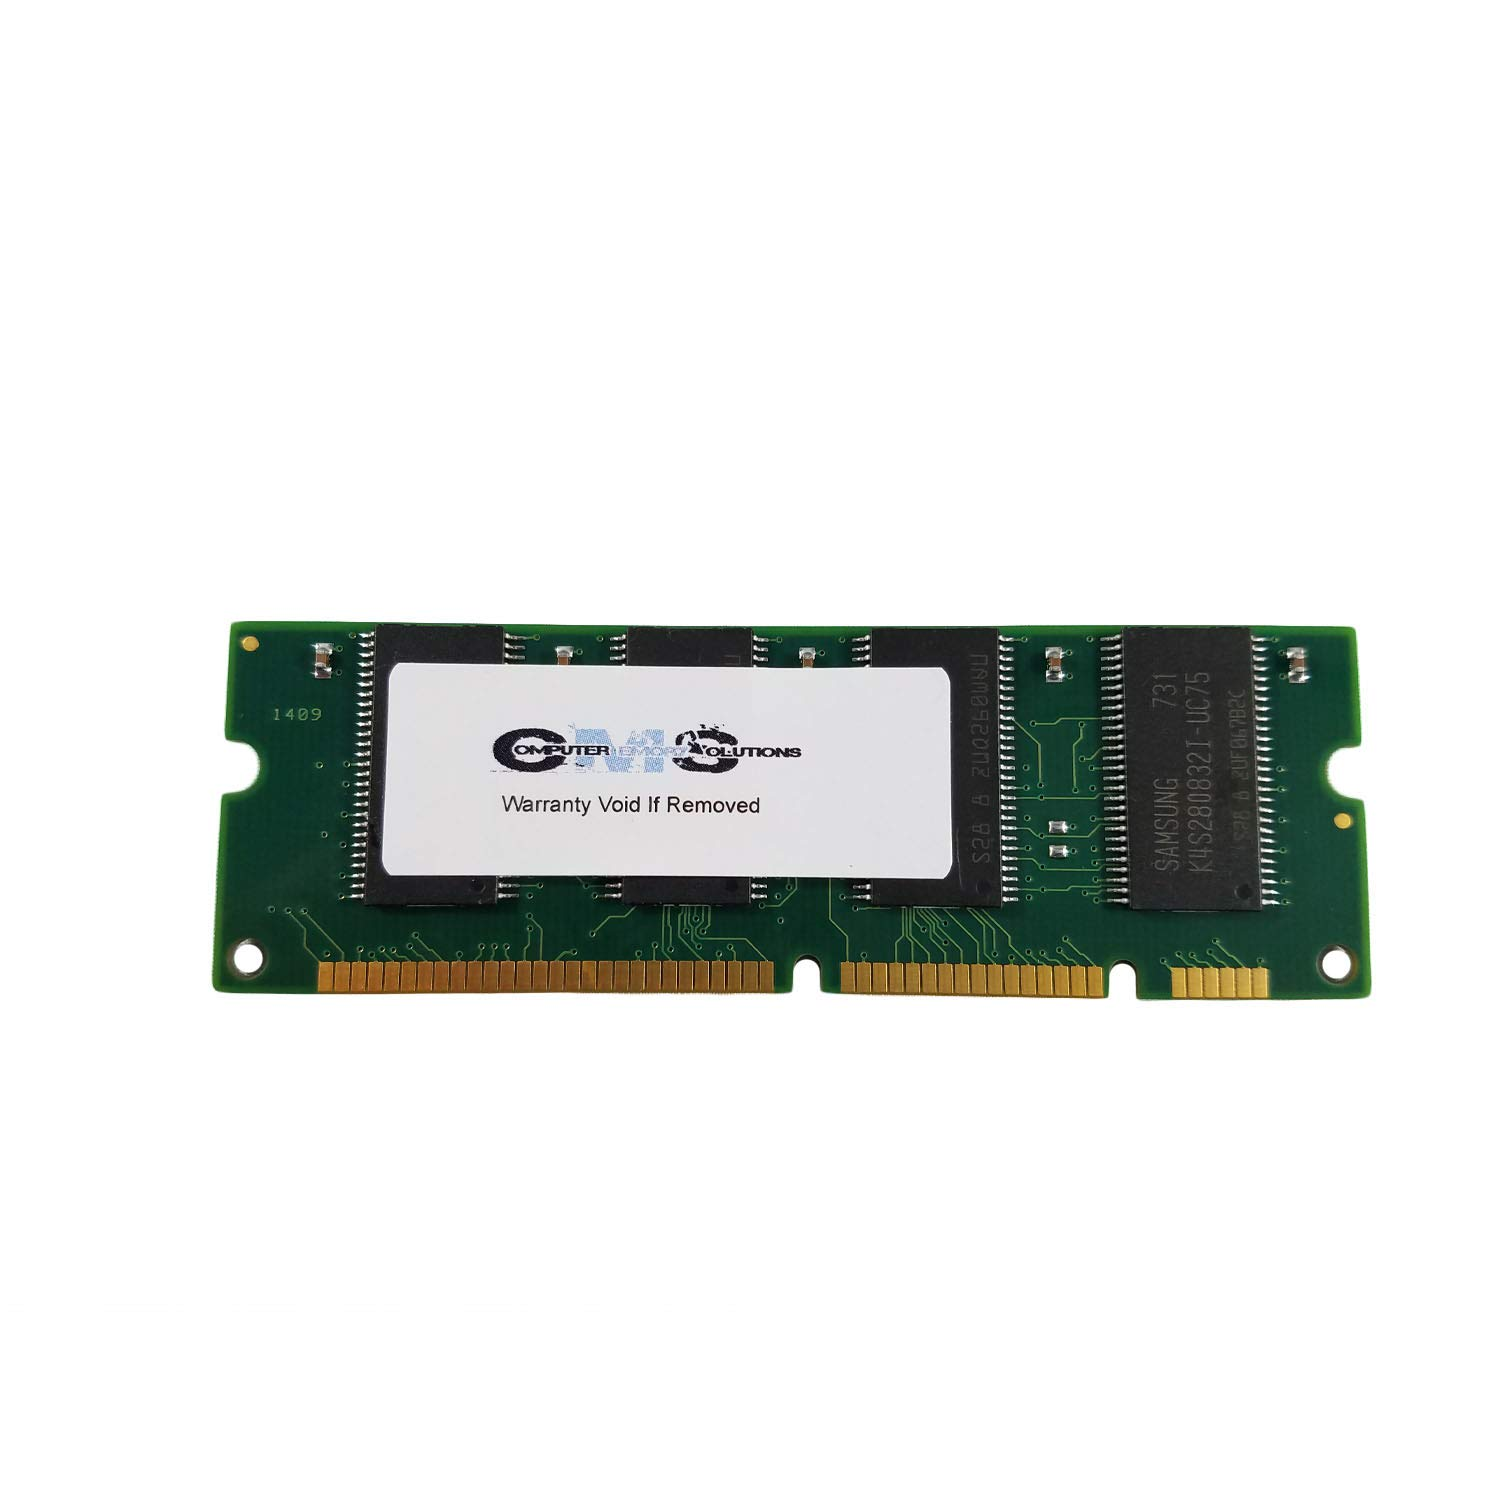 128Mb 100Pin Memory Ram Compatible with Hp Laserjet 5100, 5100Dtn, 5100Le, 5100Tn By CMS B98